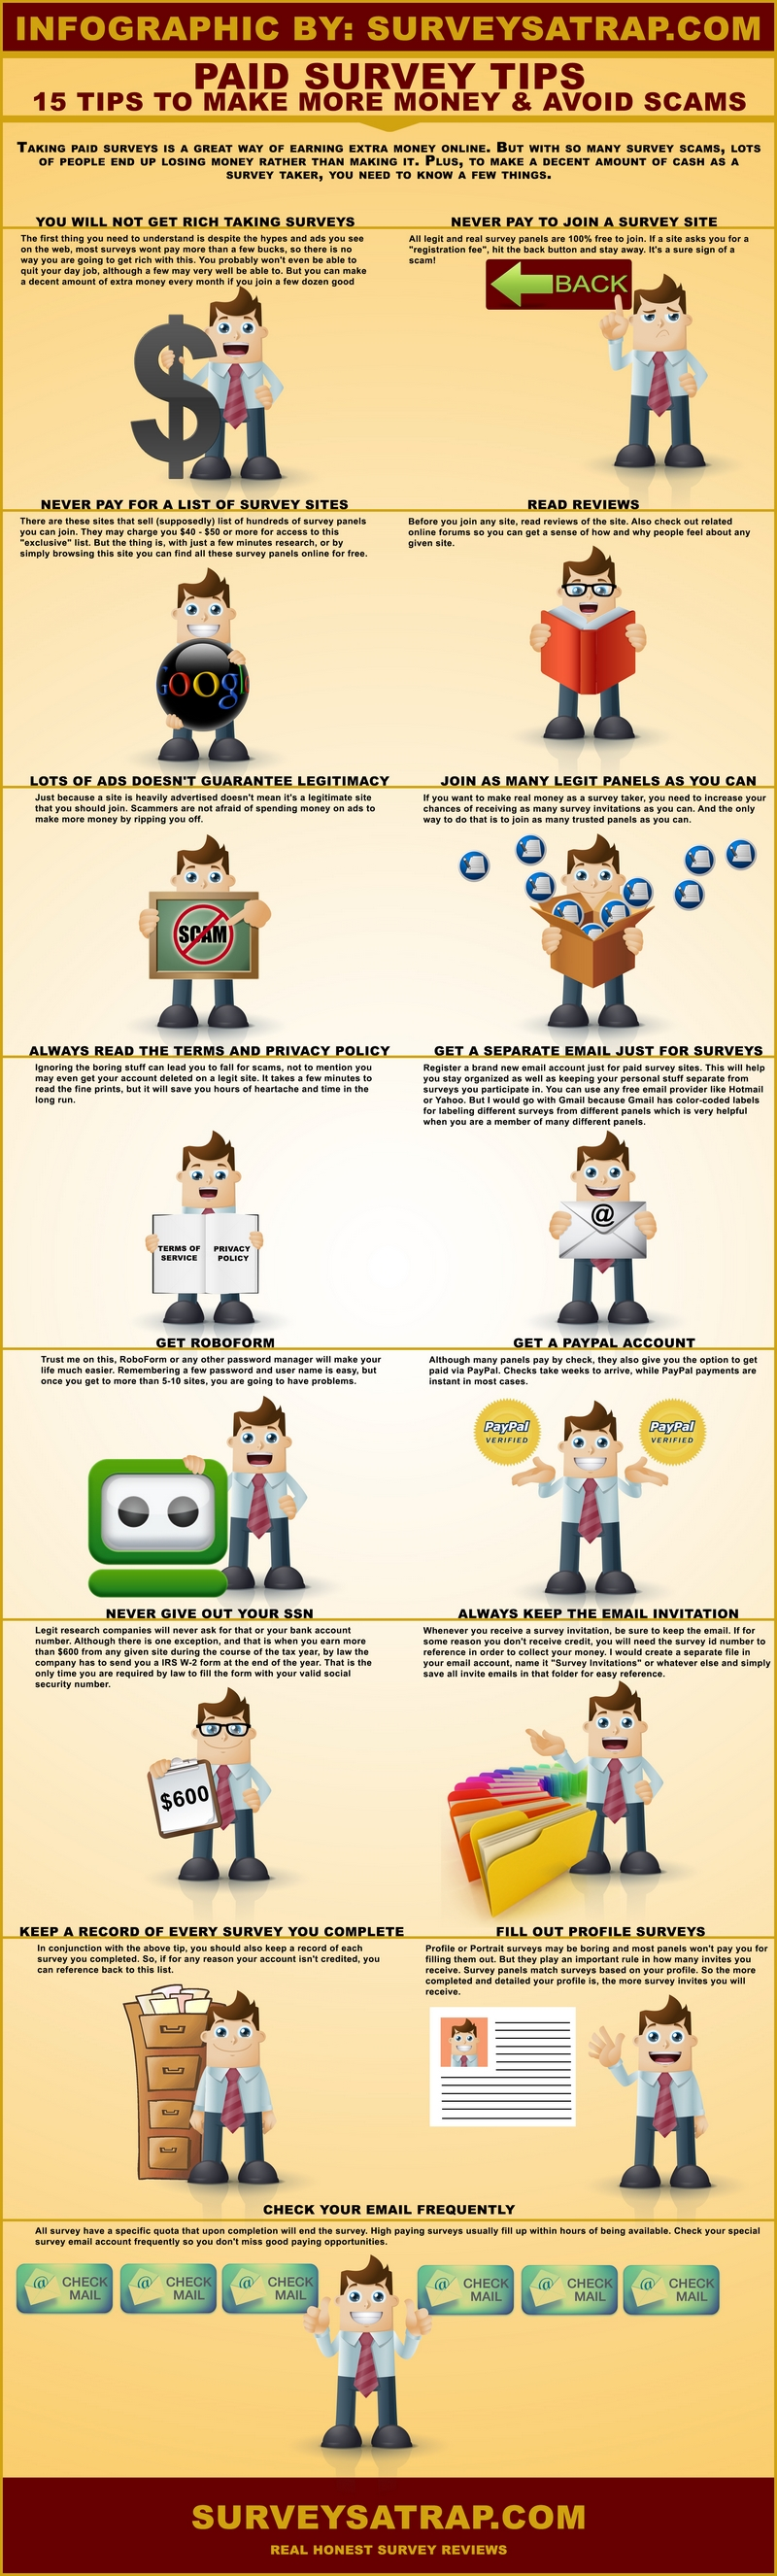 Paid Survey Tips Infographic